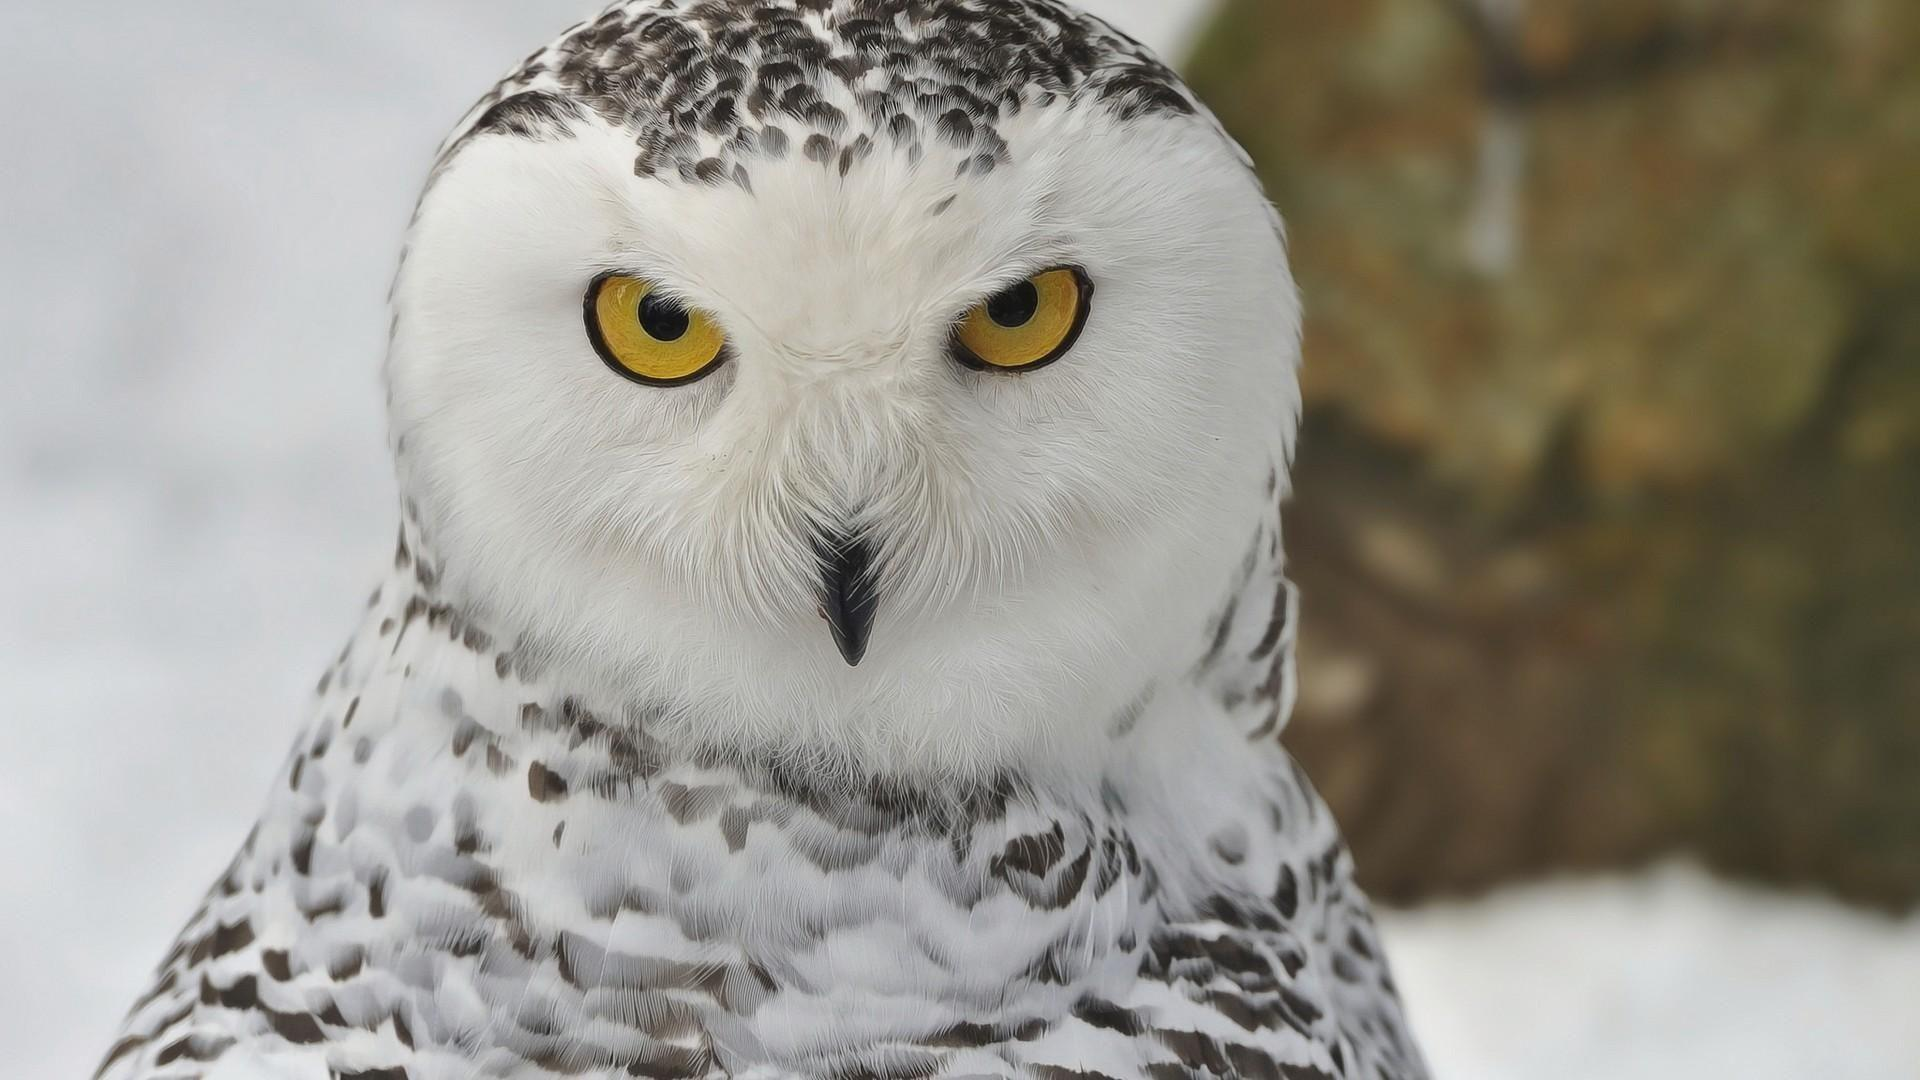 Snowy Owl Wallpaper 20437 - Baltana